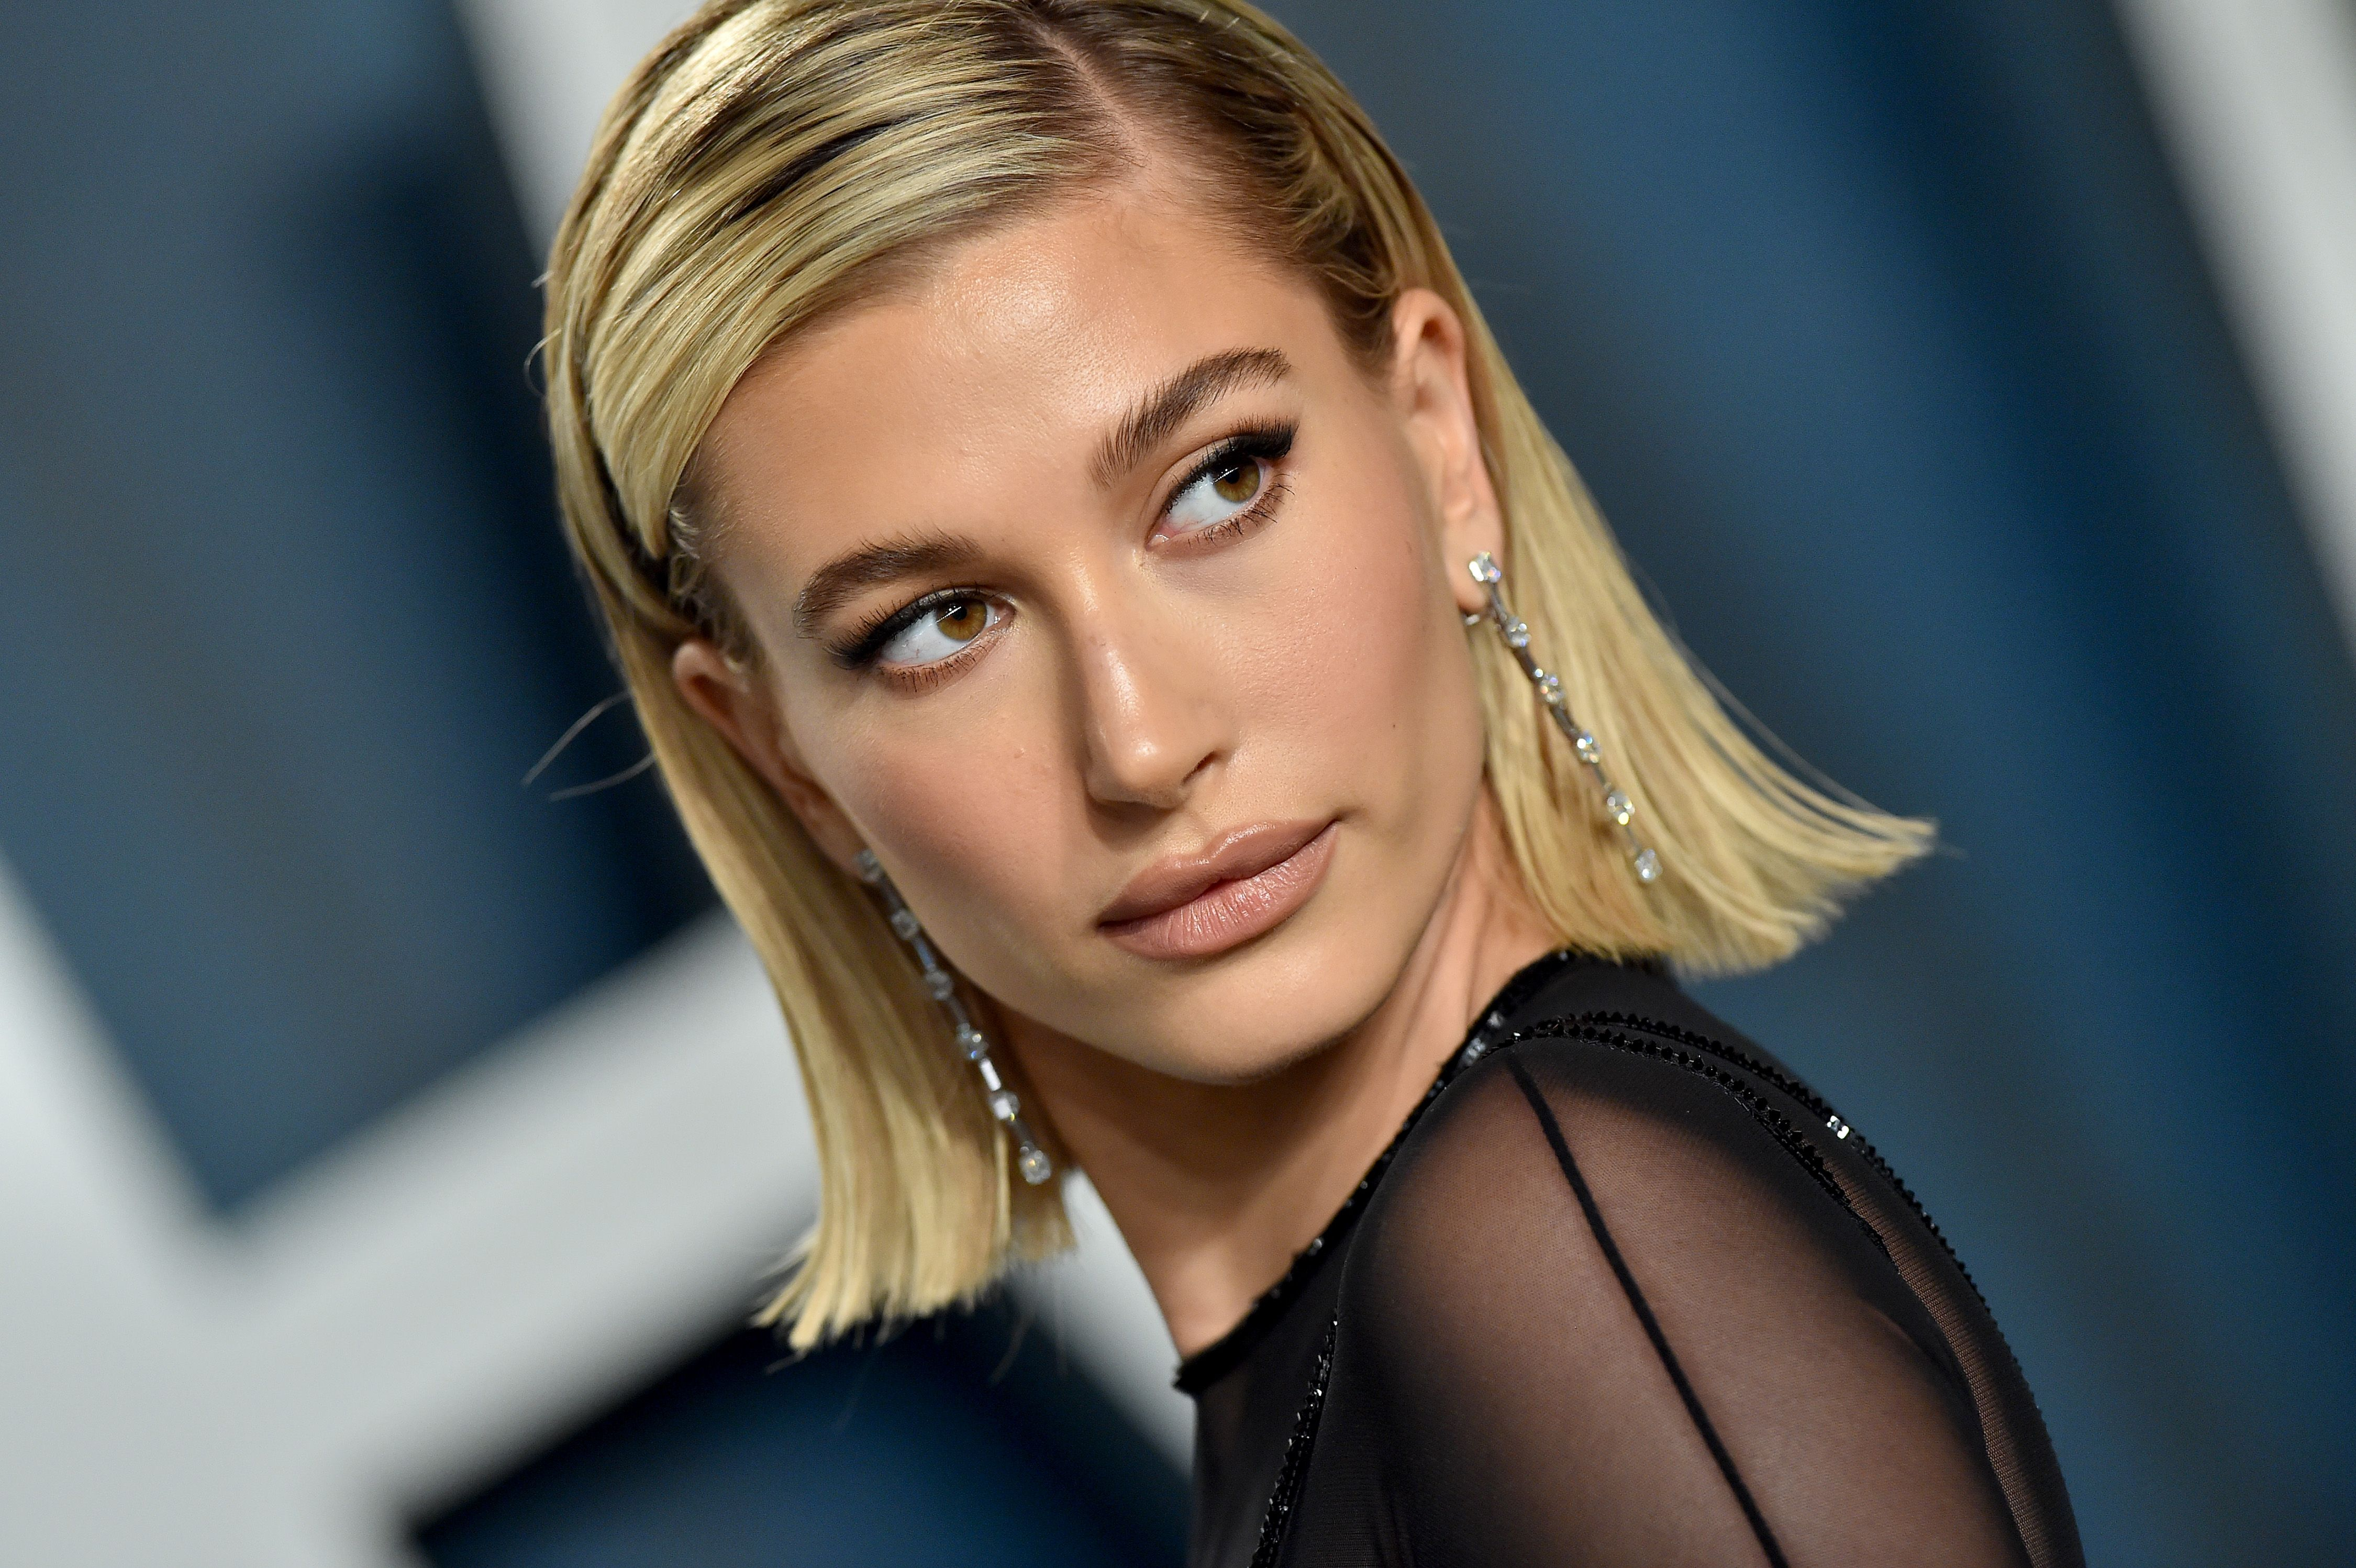 Hailey Bieber's acne-clearing hack is really simple